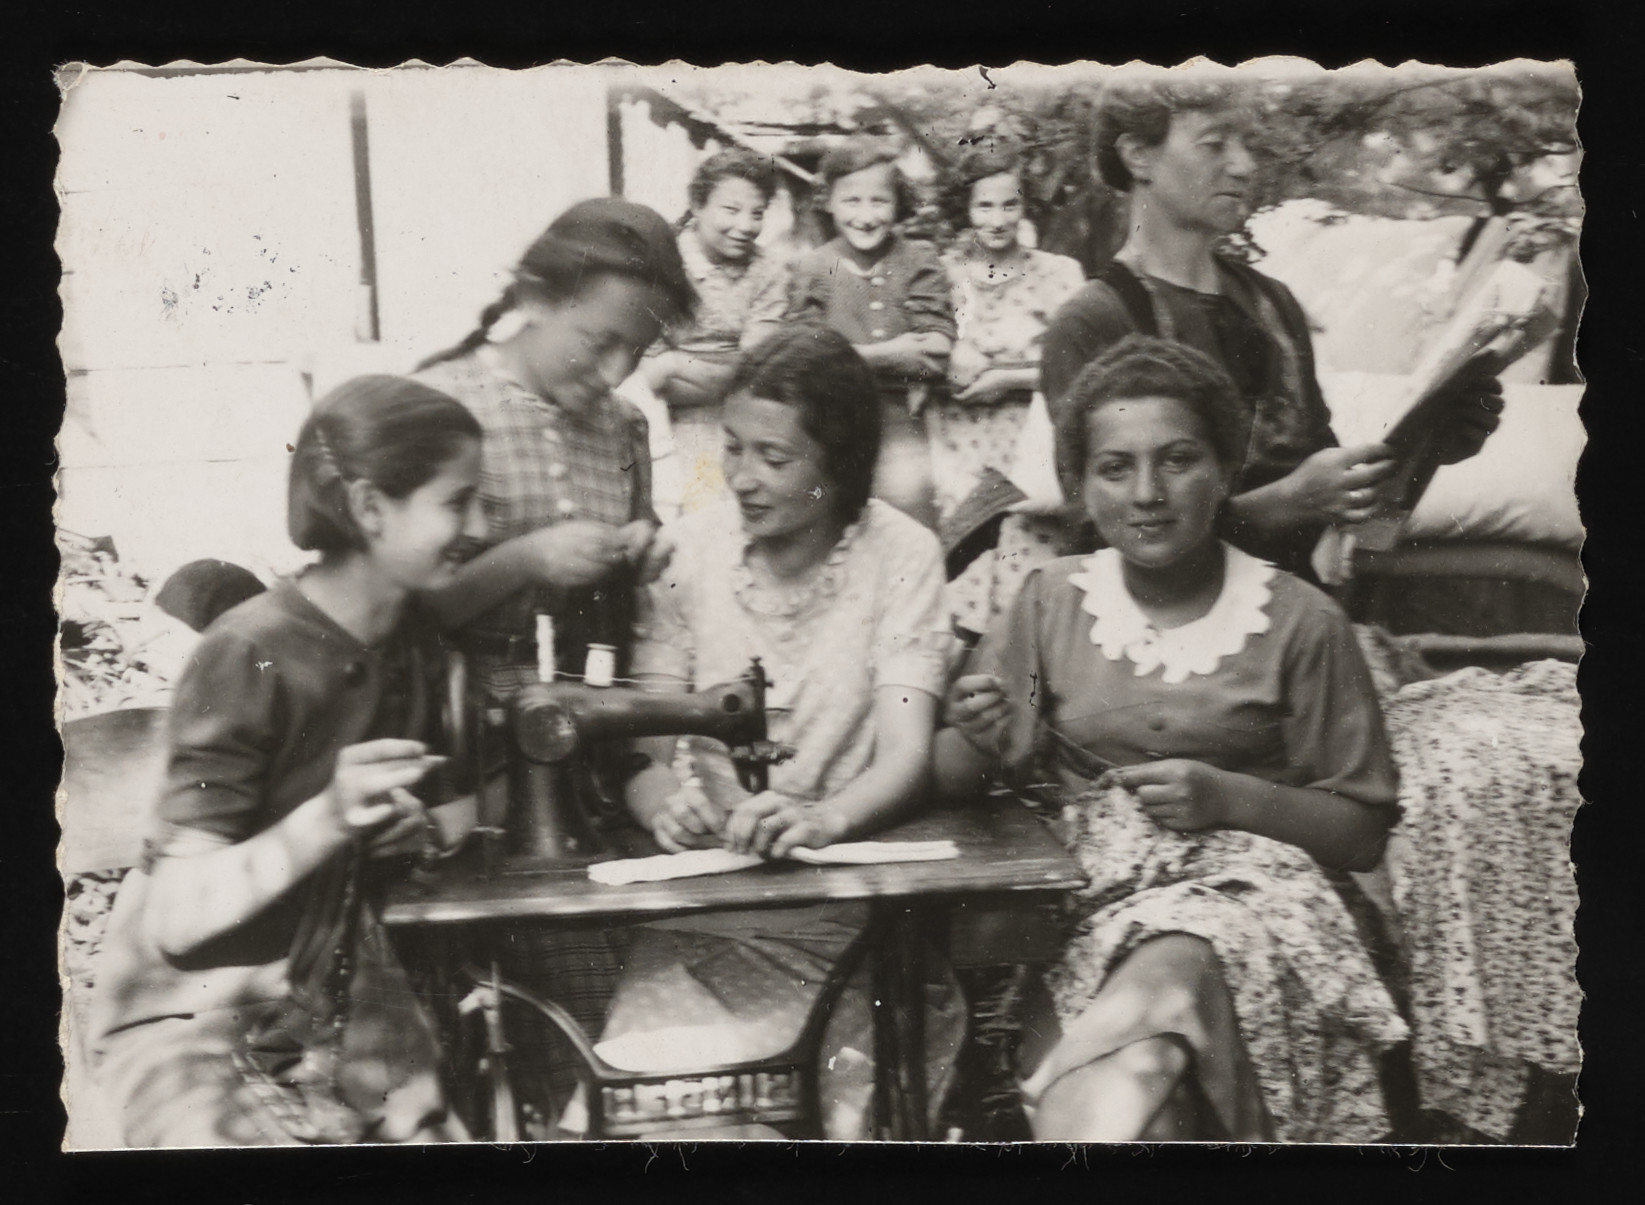 A group of Jewish girls attend a sewing class in Kolbuszowa.  Seated left to right are Wiesenfeld, a Polish girl, and Genia Nussbaum.  Standing on the right is the teacher.